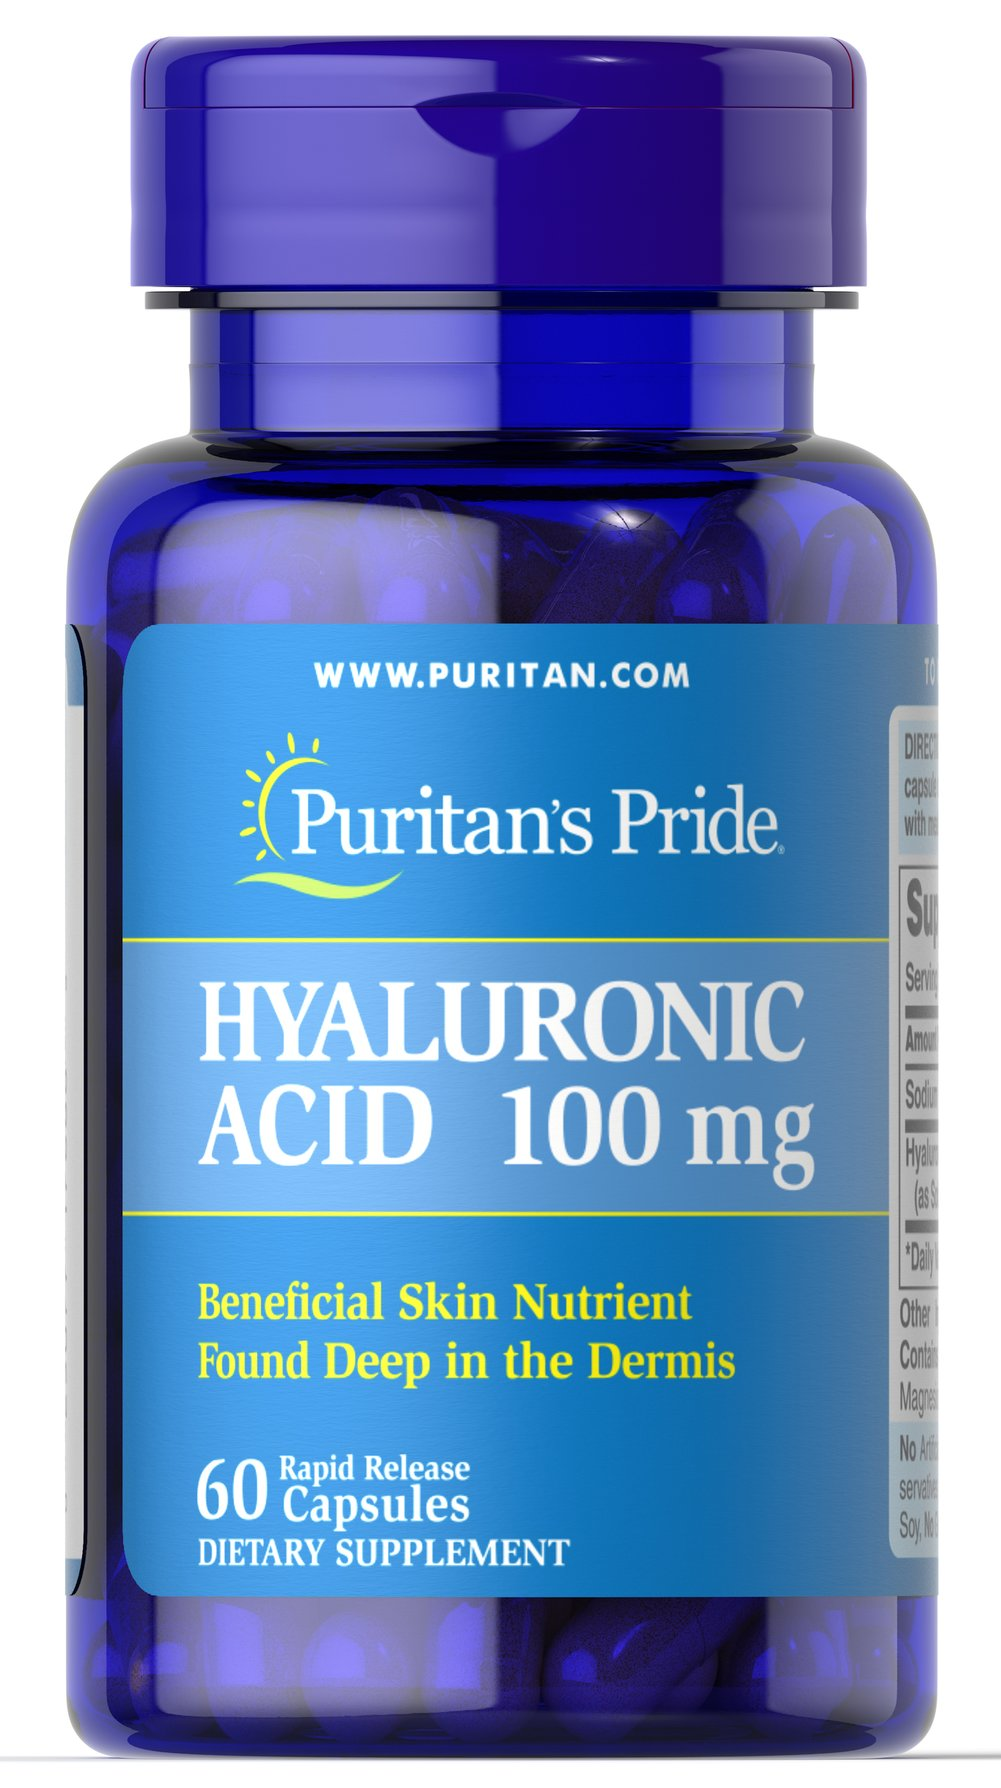 Hyaluronic Acid 100 mg <p>Helps lubricate joints**</p><p>Hyaluronic Acid is a polysaccharide found in almost all adult connective tissue, including joints, ligaments, tendons and skin.** Just one Hyaluronic Acid capsule a day can help maintain the fluid between your joints, providing the cushioning and lubrication necessary for easy movement.**</p> 60 Capsules 100 mg $44.99